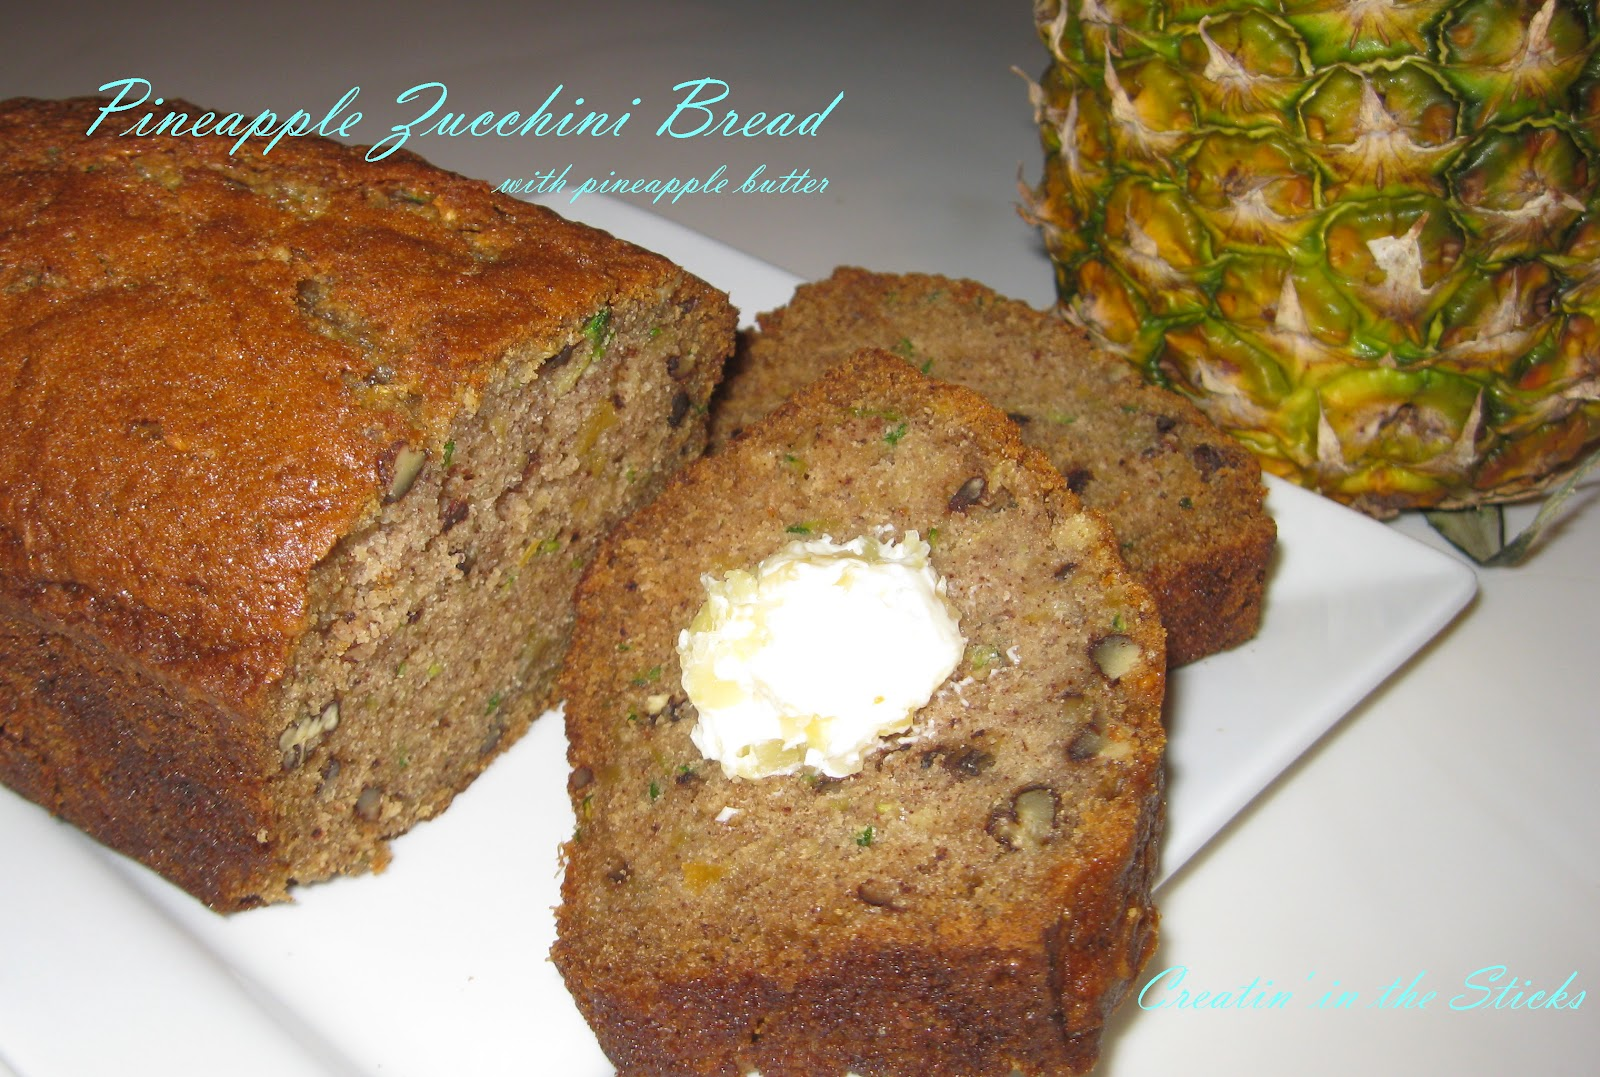 pineapple zucchini bread with pineapple butter pineapple zucchini ...